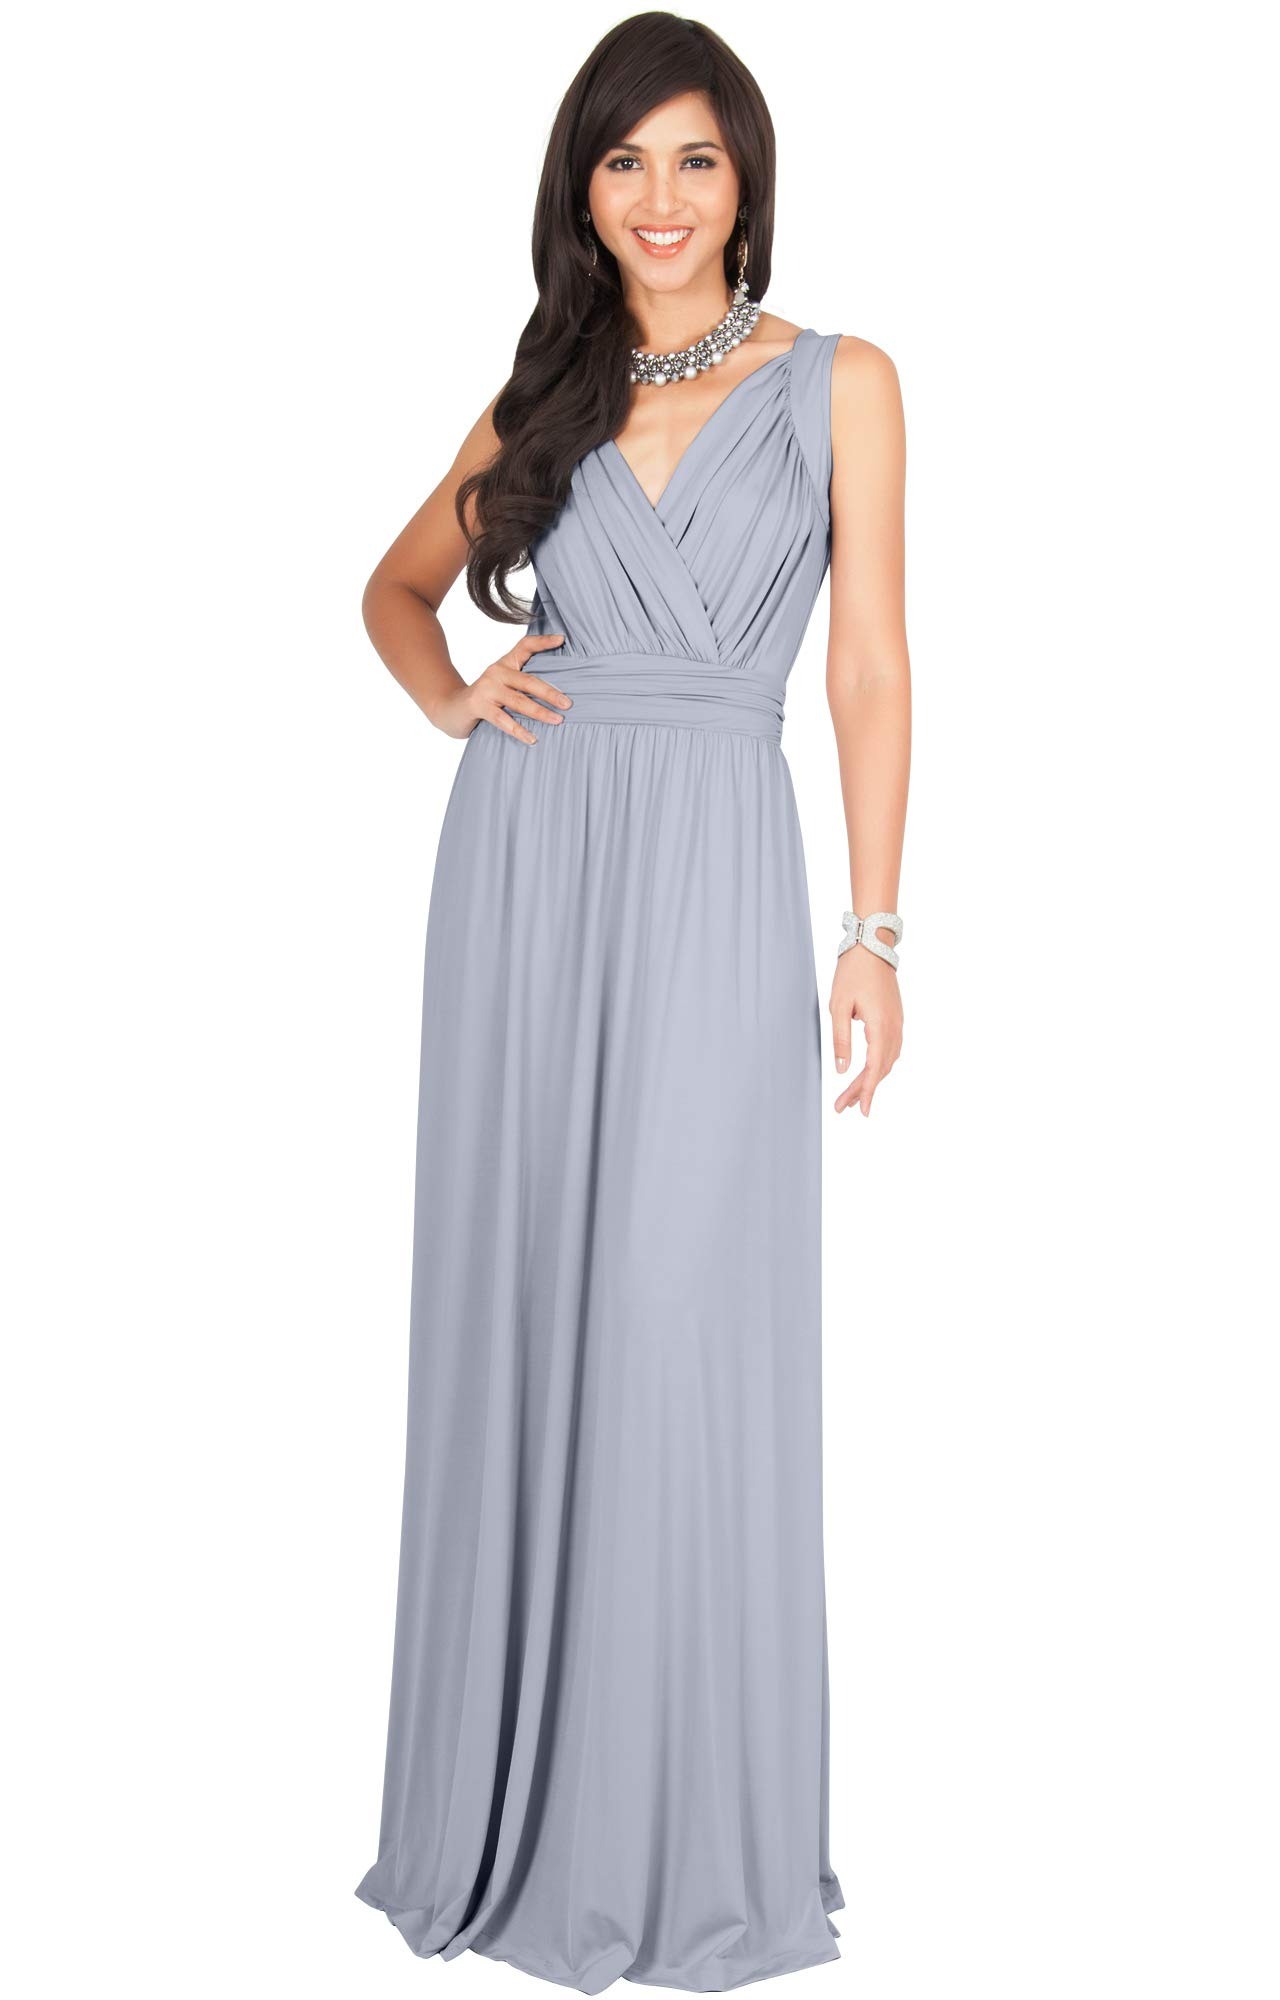 511aed4e56 KOH KOH Plus Size Womens Long Sleeveless Flowy Bridesmaids Cocktail Party  Evening Formal Sexy Summer Wedding Guest Ball Prom Gown Gowns Maxi Dress  Dresses, ...